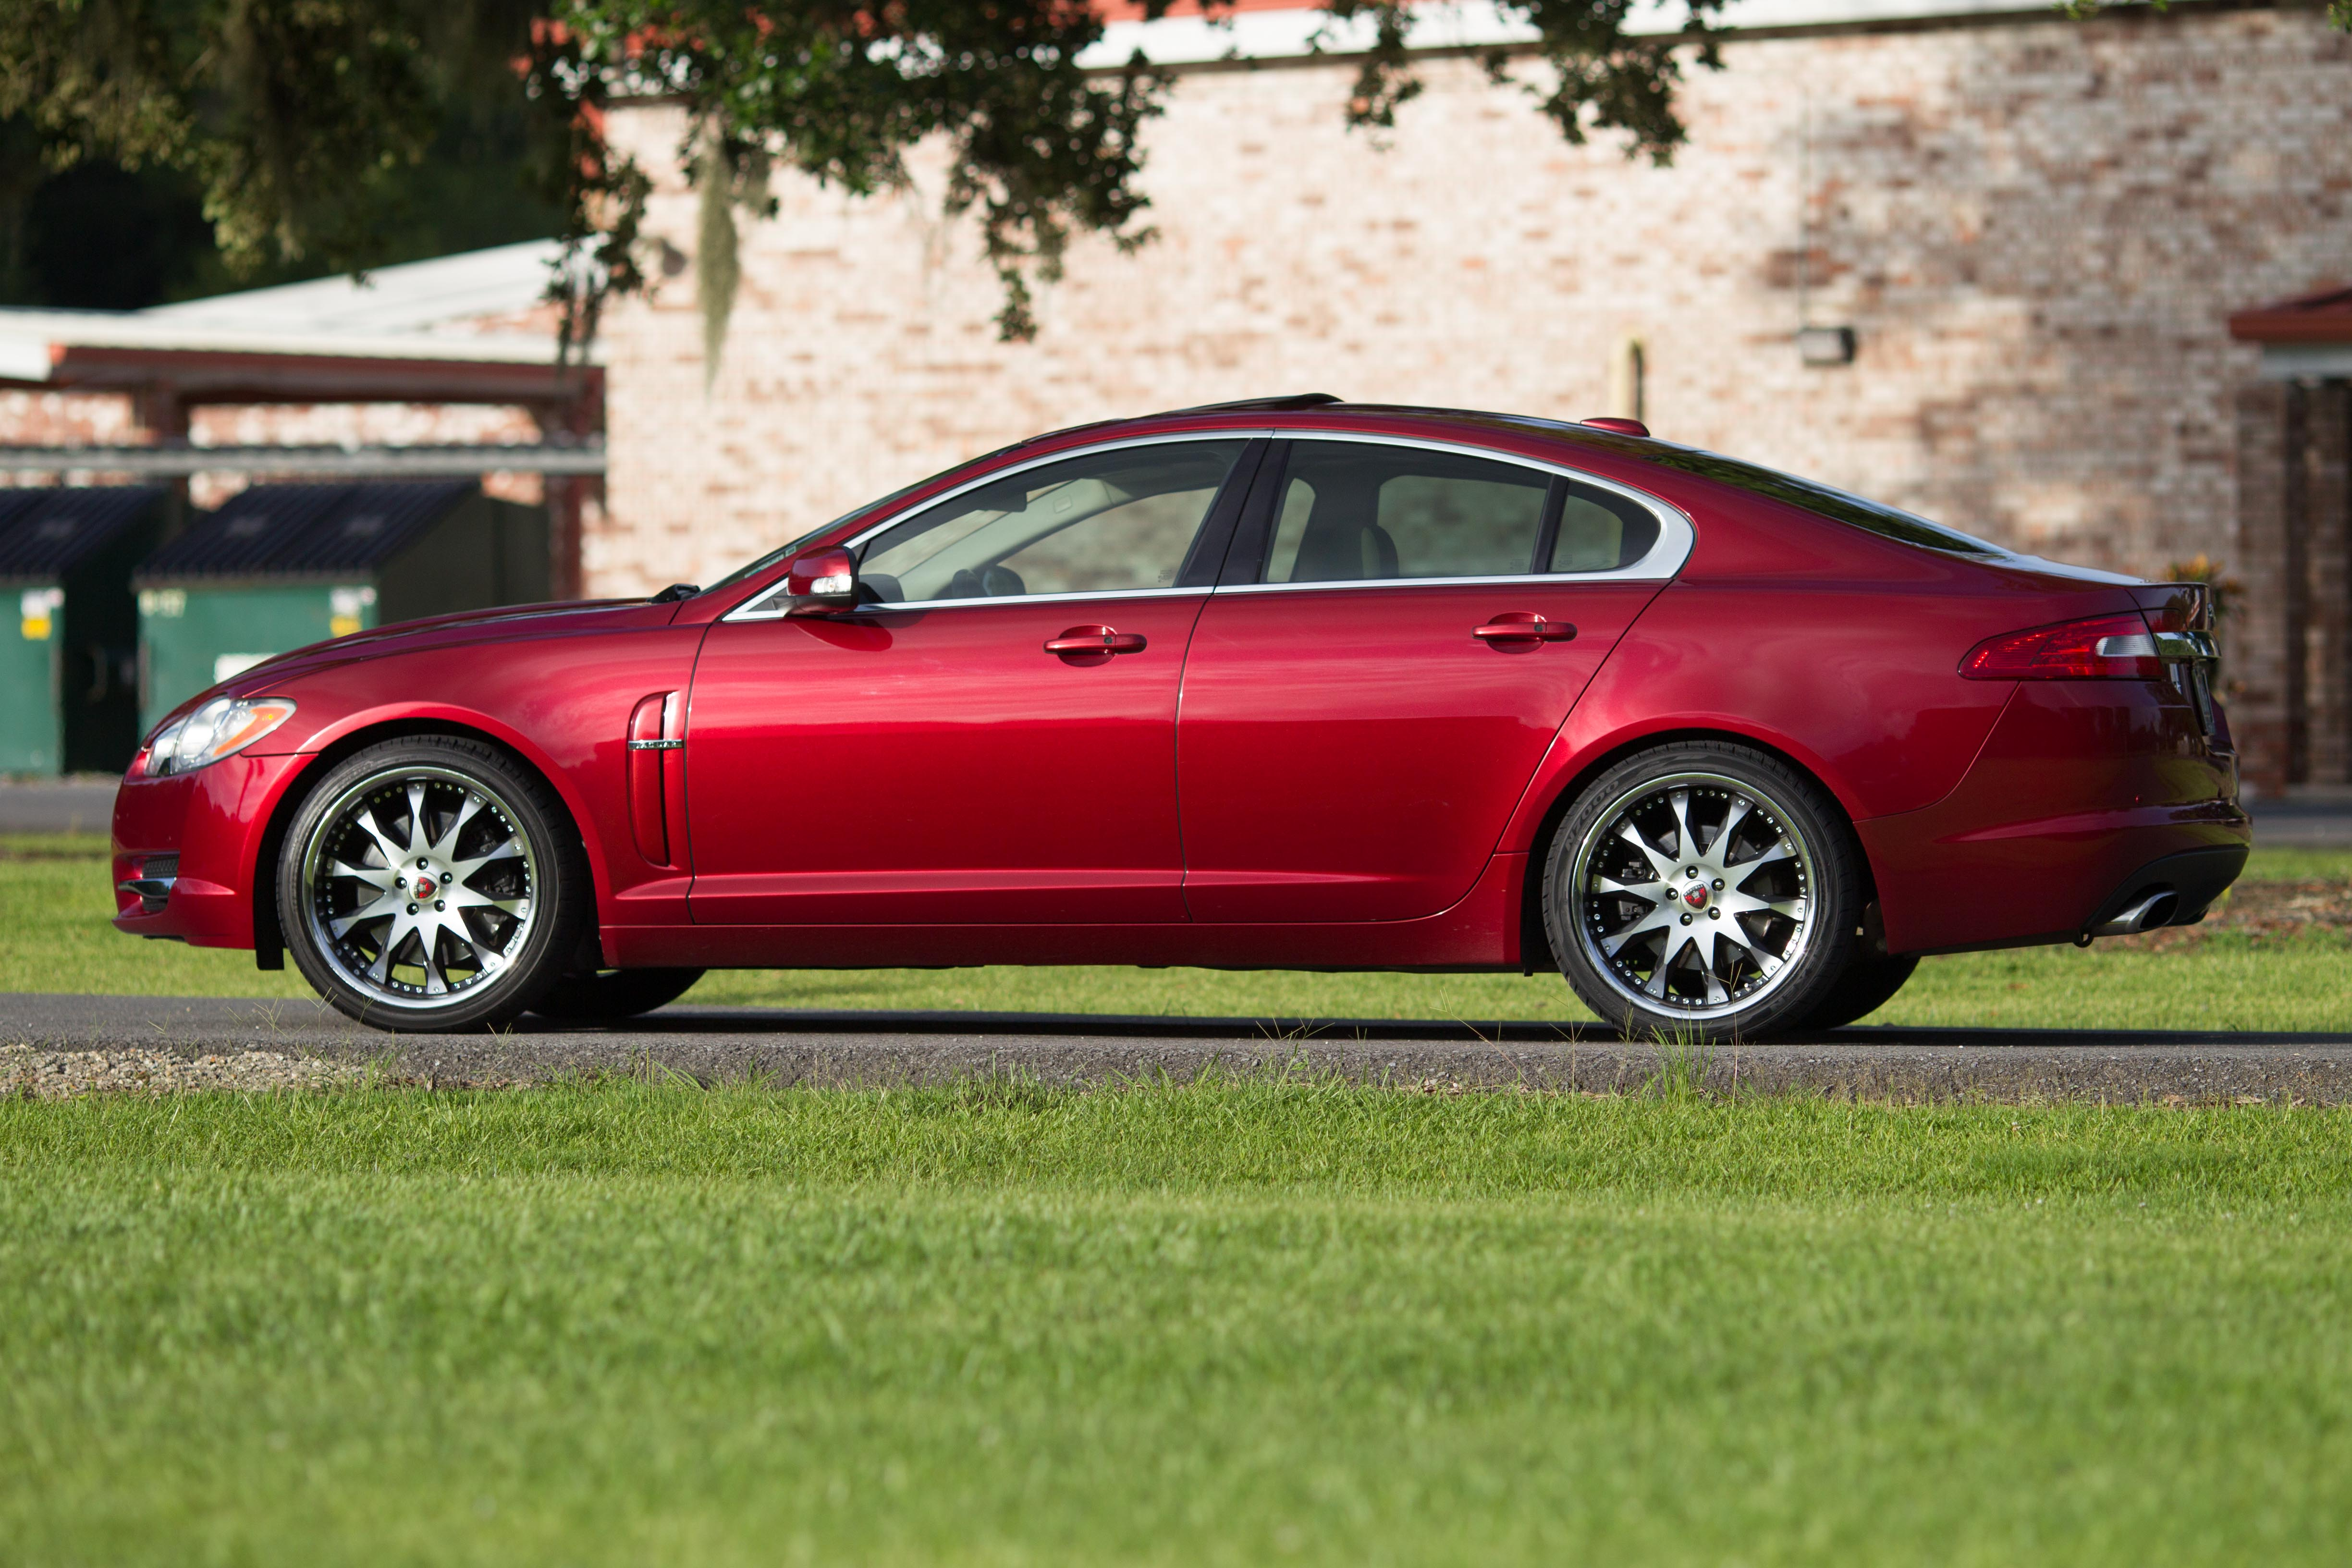 team initial reports test xf bhp for forum ownership sale img drives jaguar